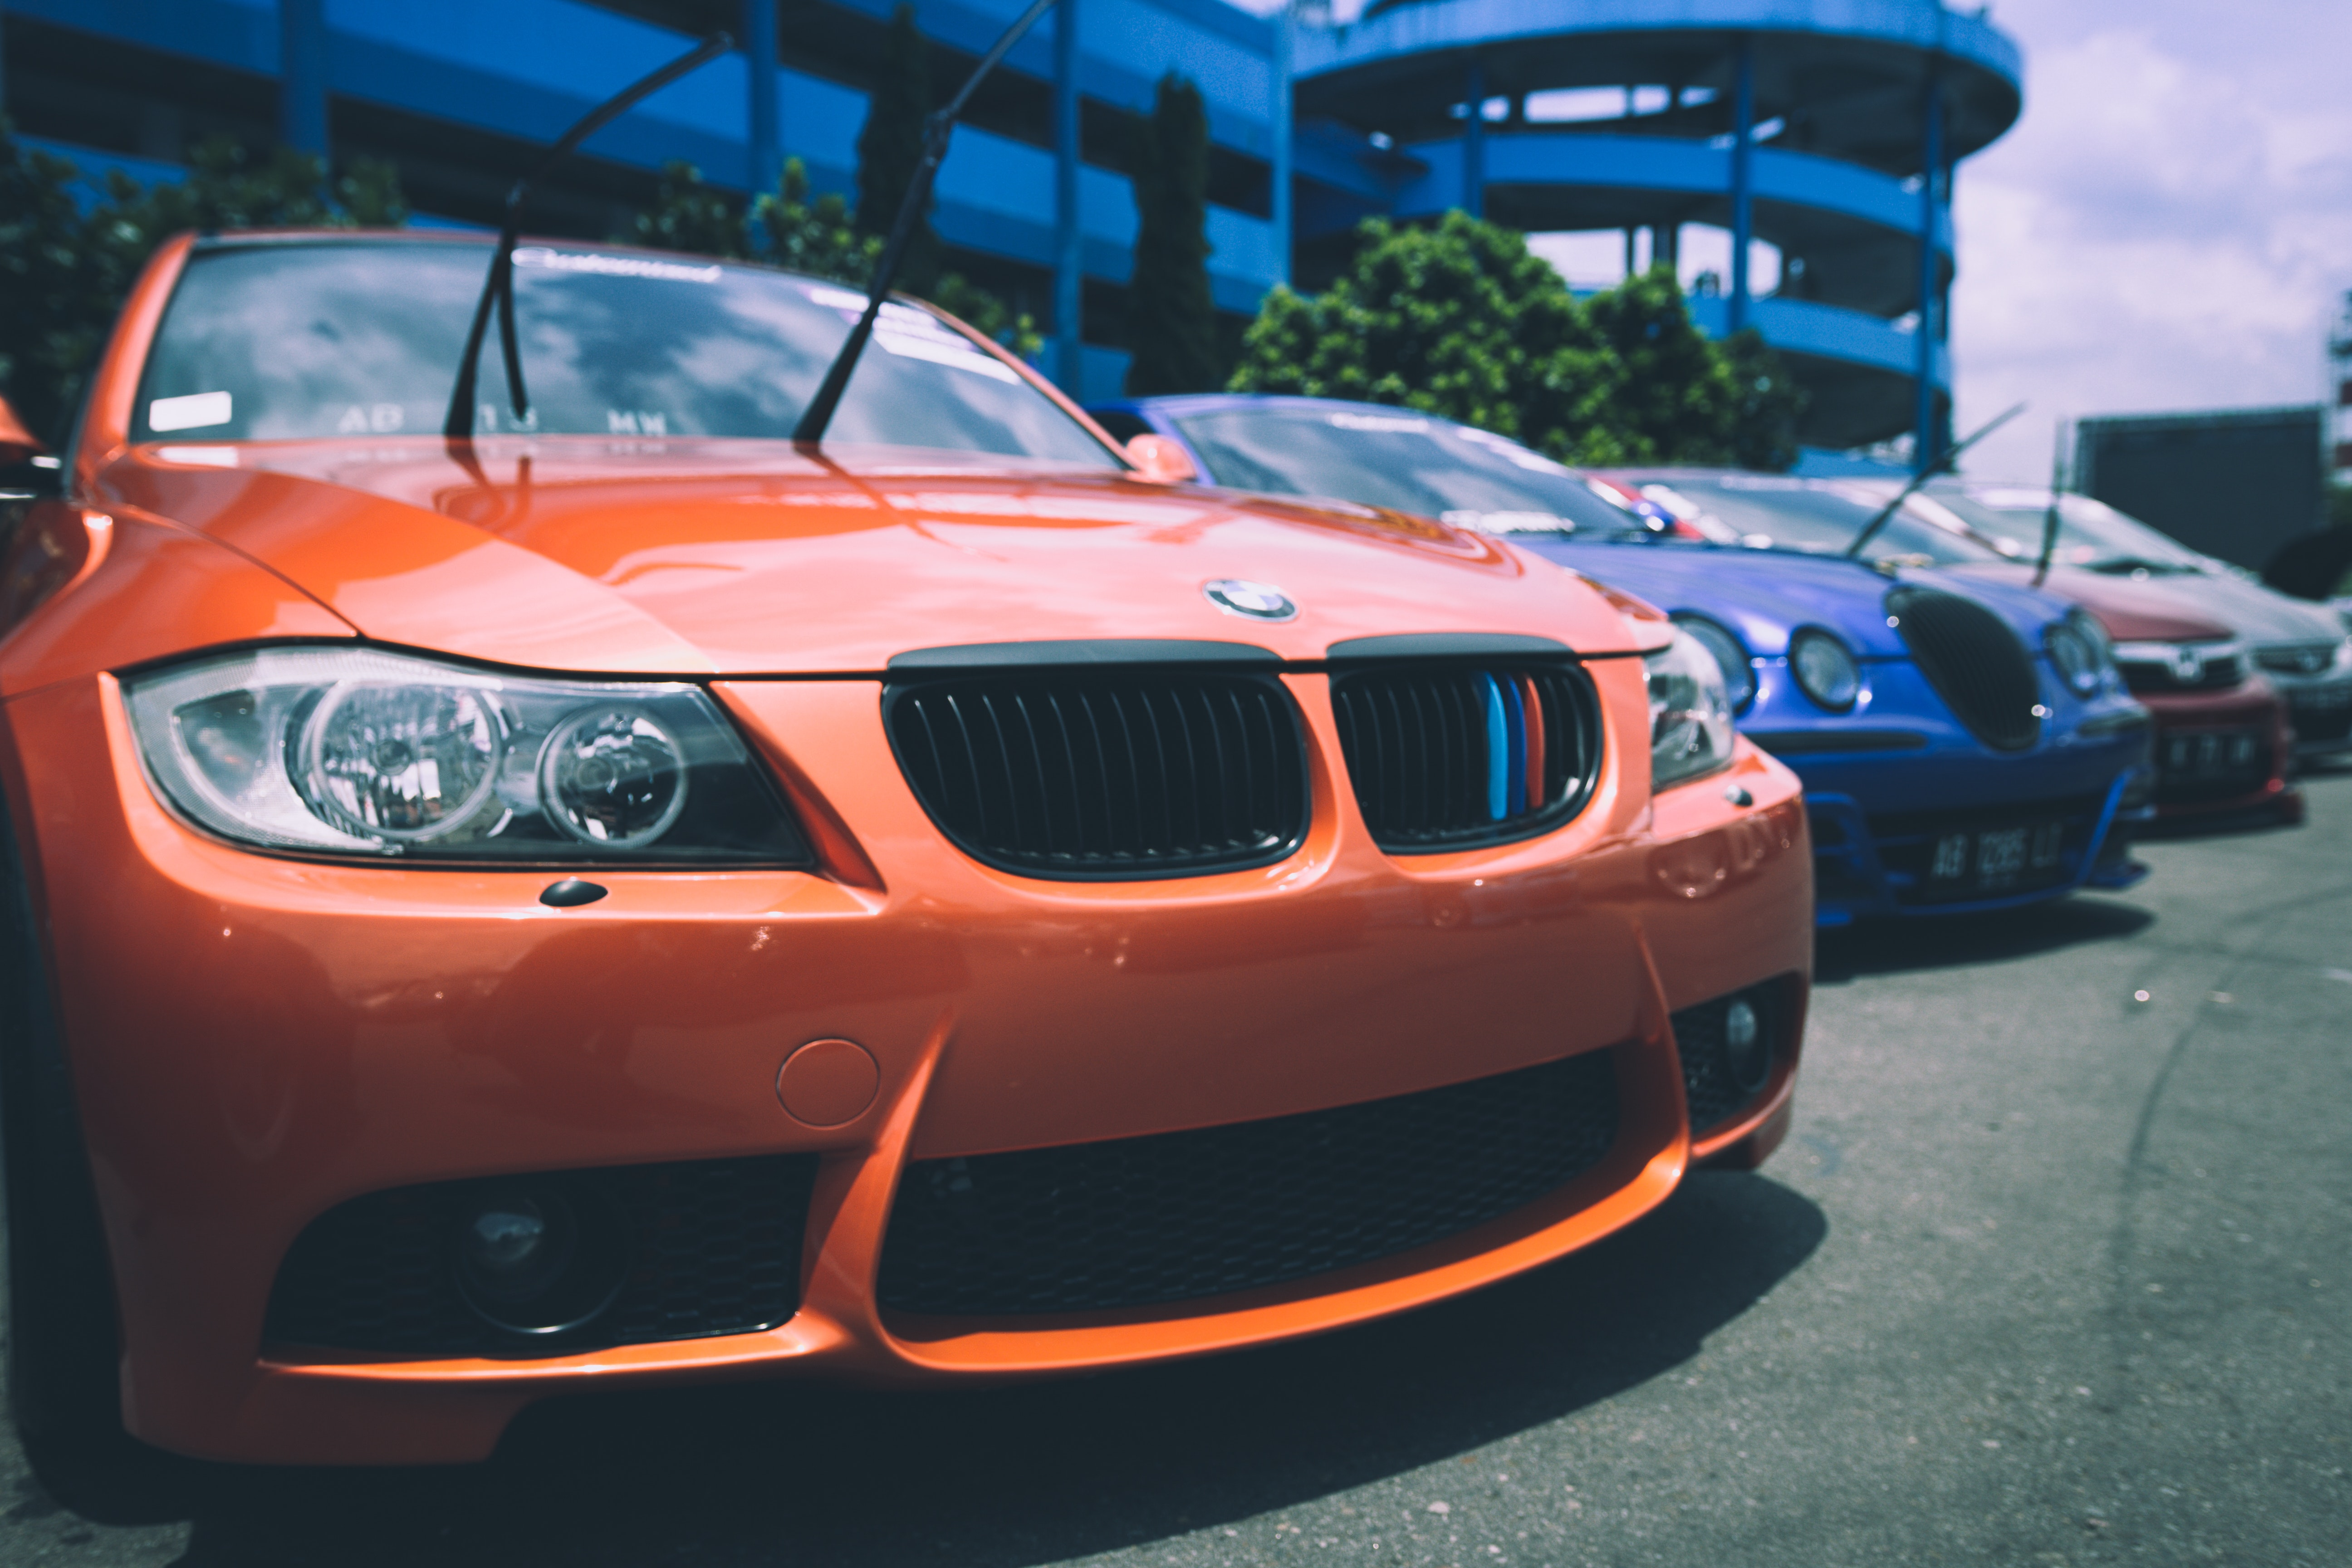 Orange Bmw Car Beside Blue Bugatti Car Free Stock Photo